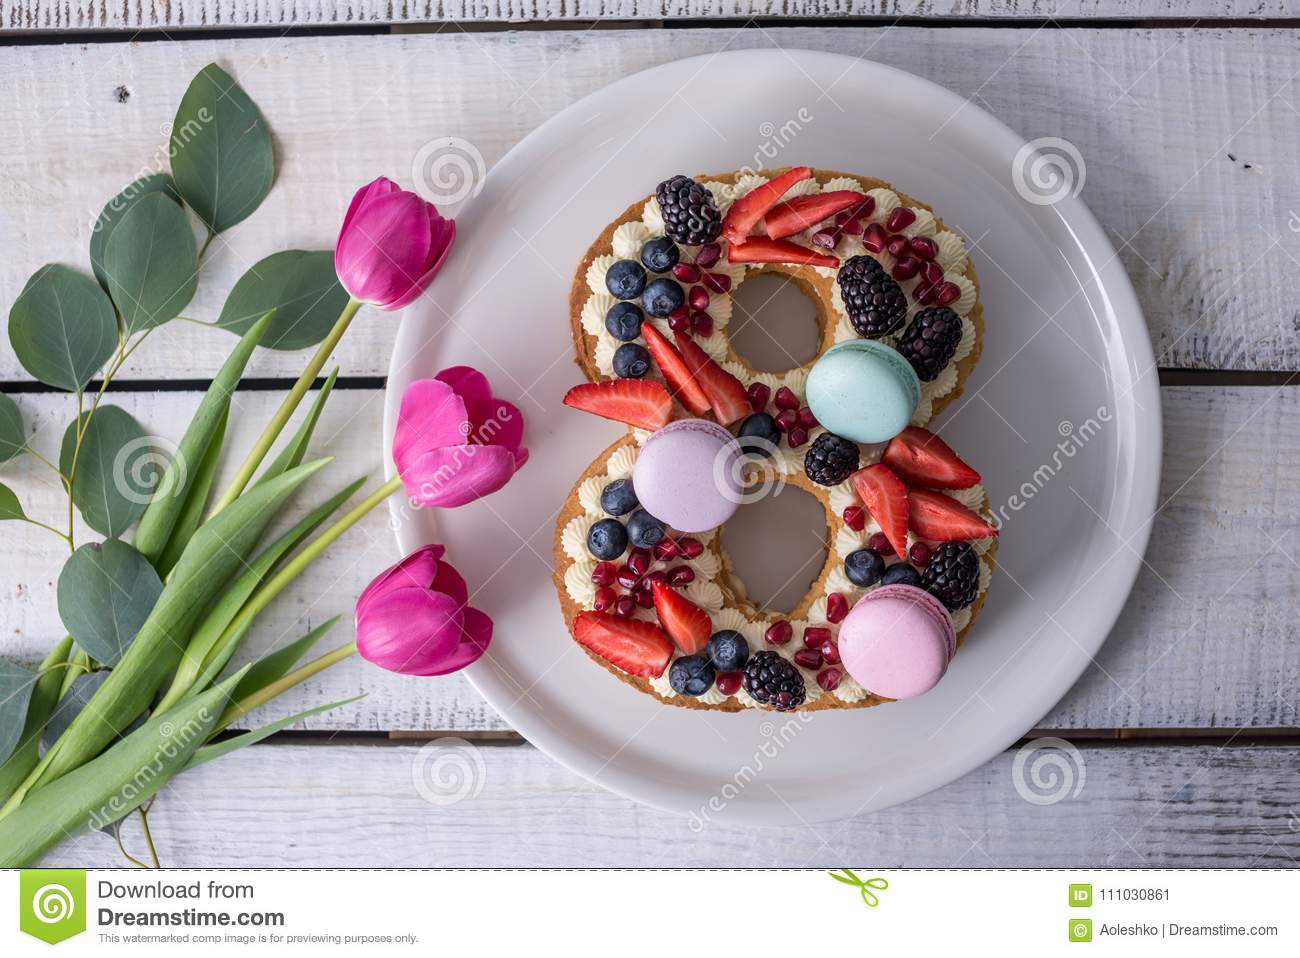 Cake In Shape Of Number 8 Decorated With Berries And Flowers Tulips